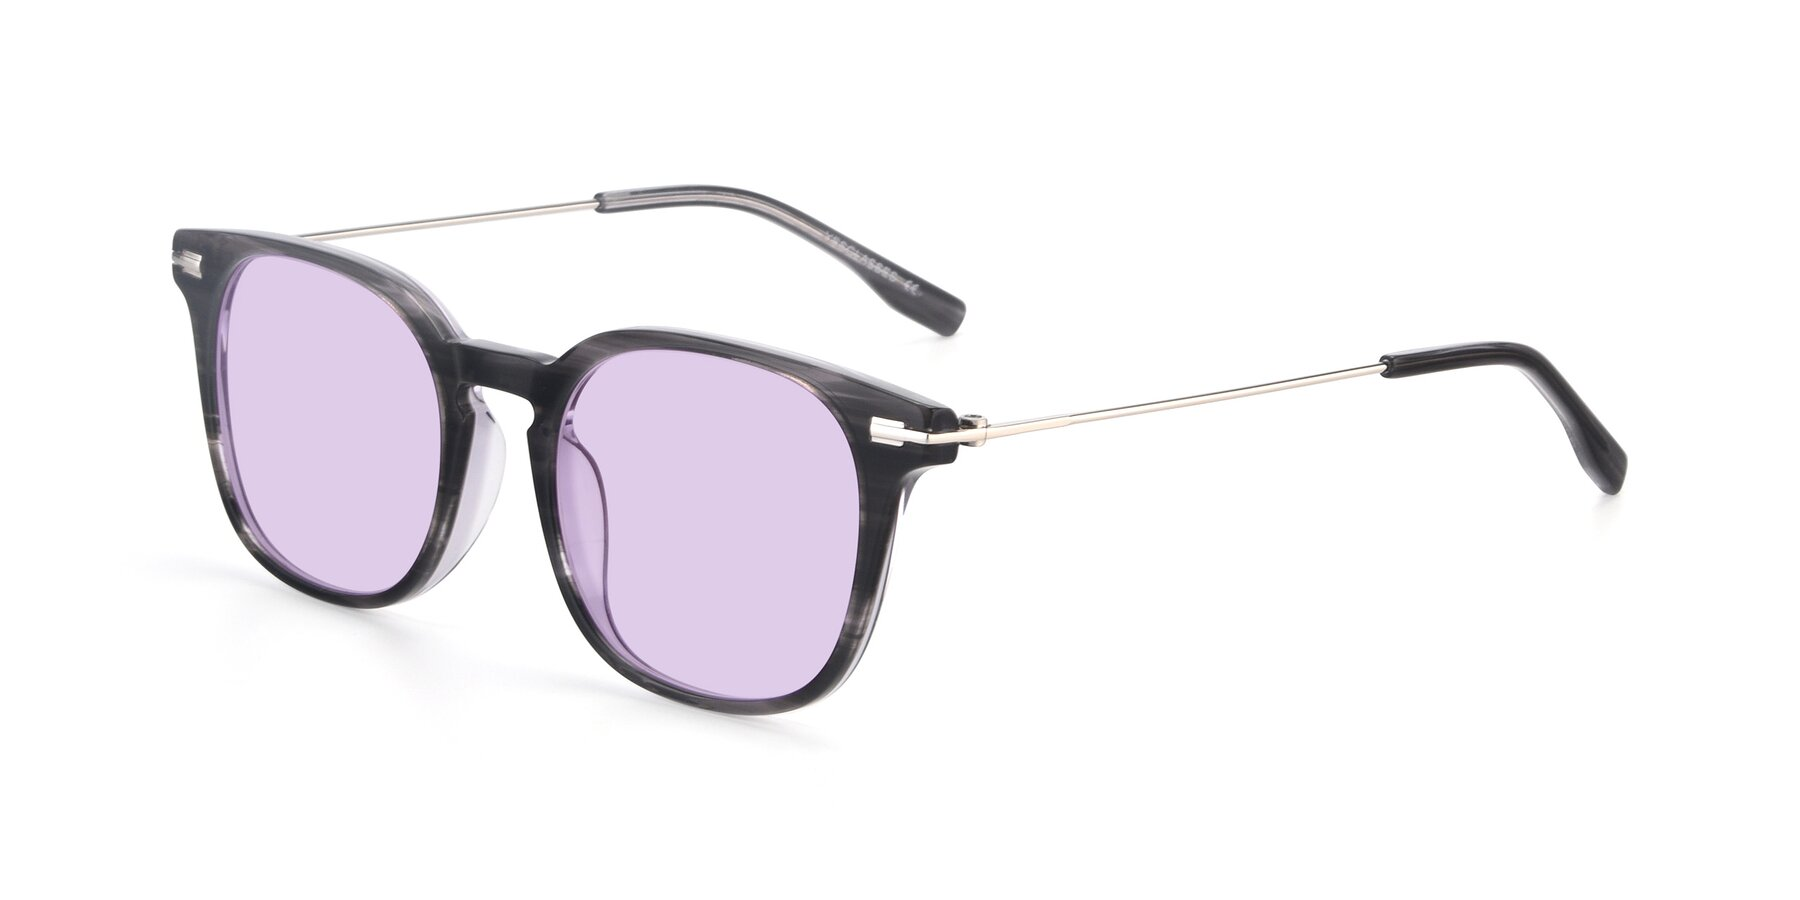 Angle of 17711 in Grey with Light Purple Tinted Lenses